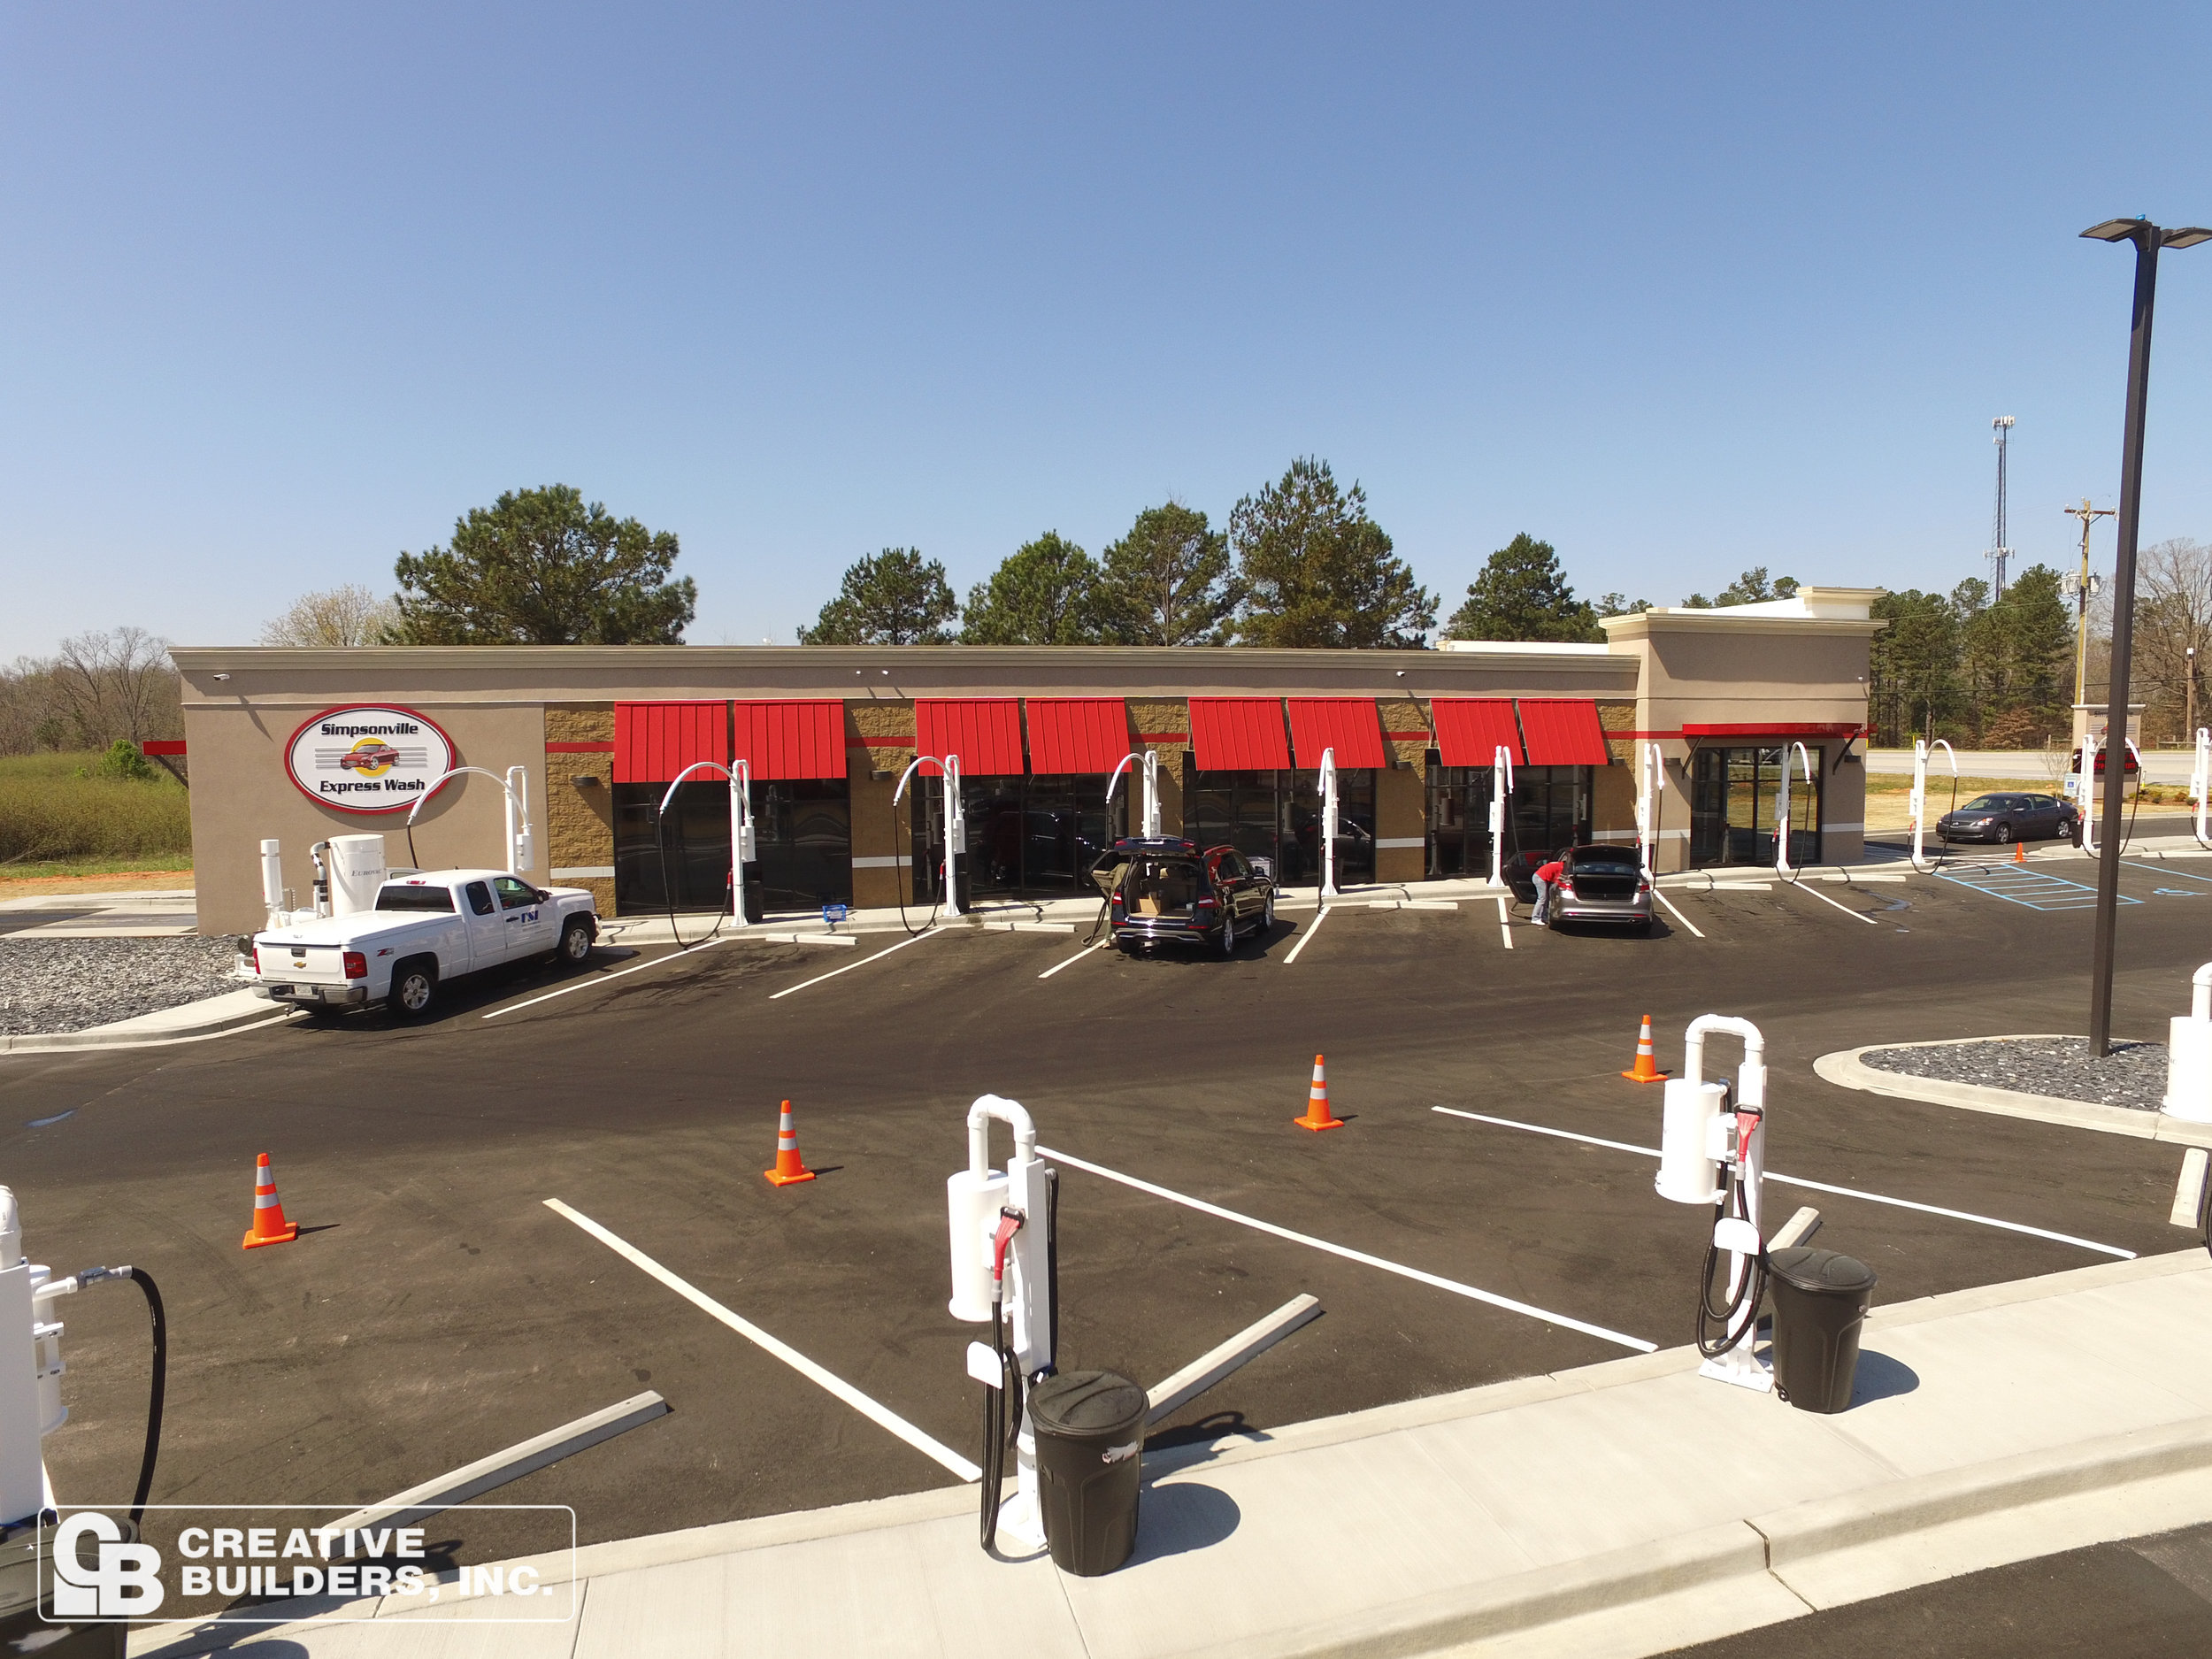 simpsonville_express_wash-9.jpg